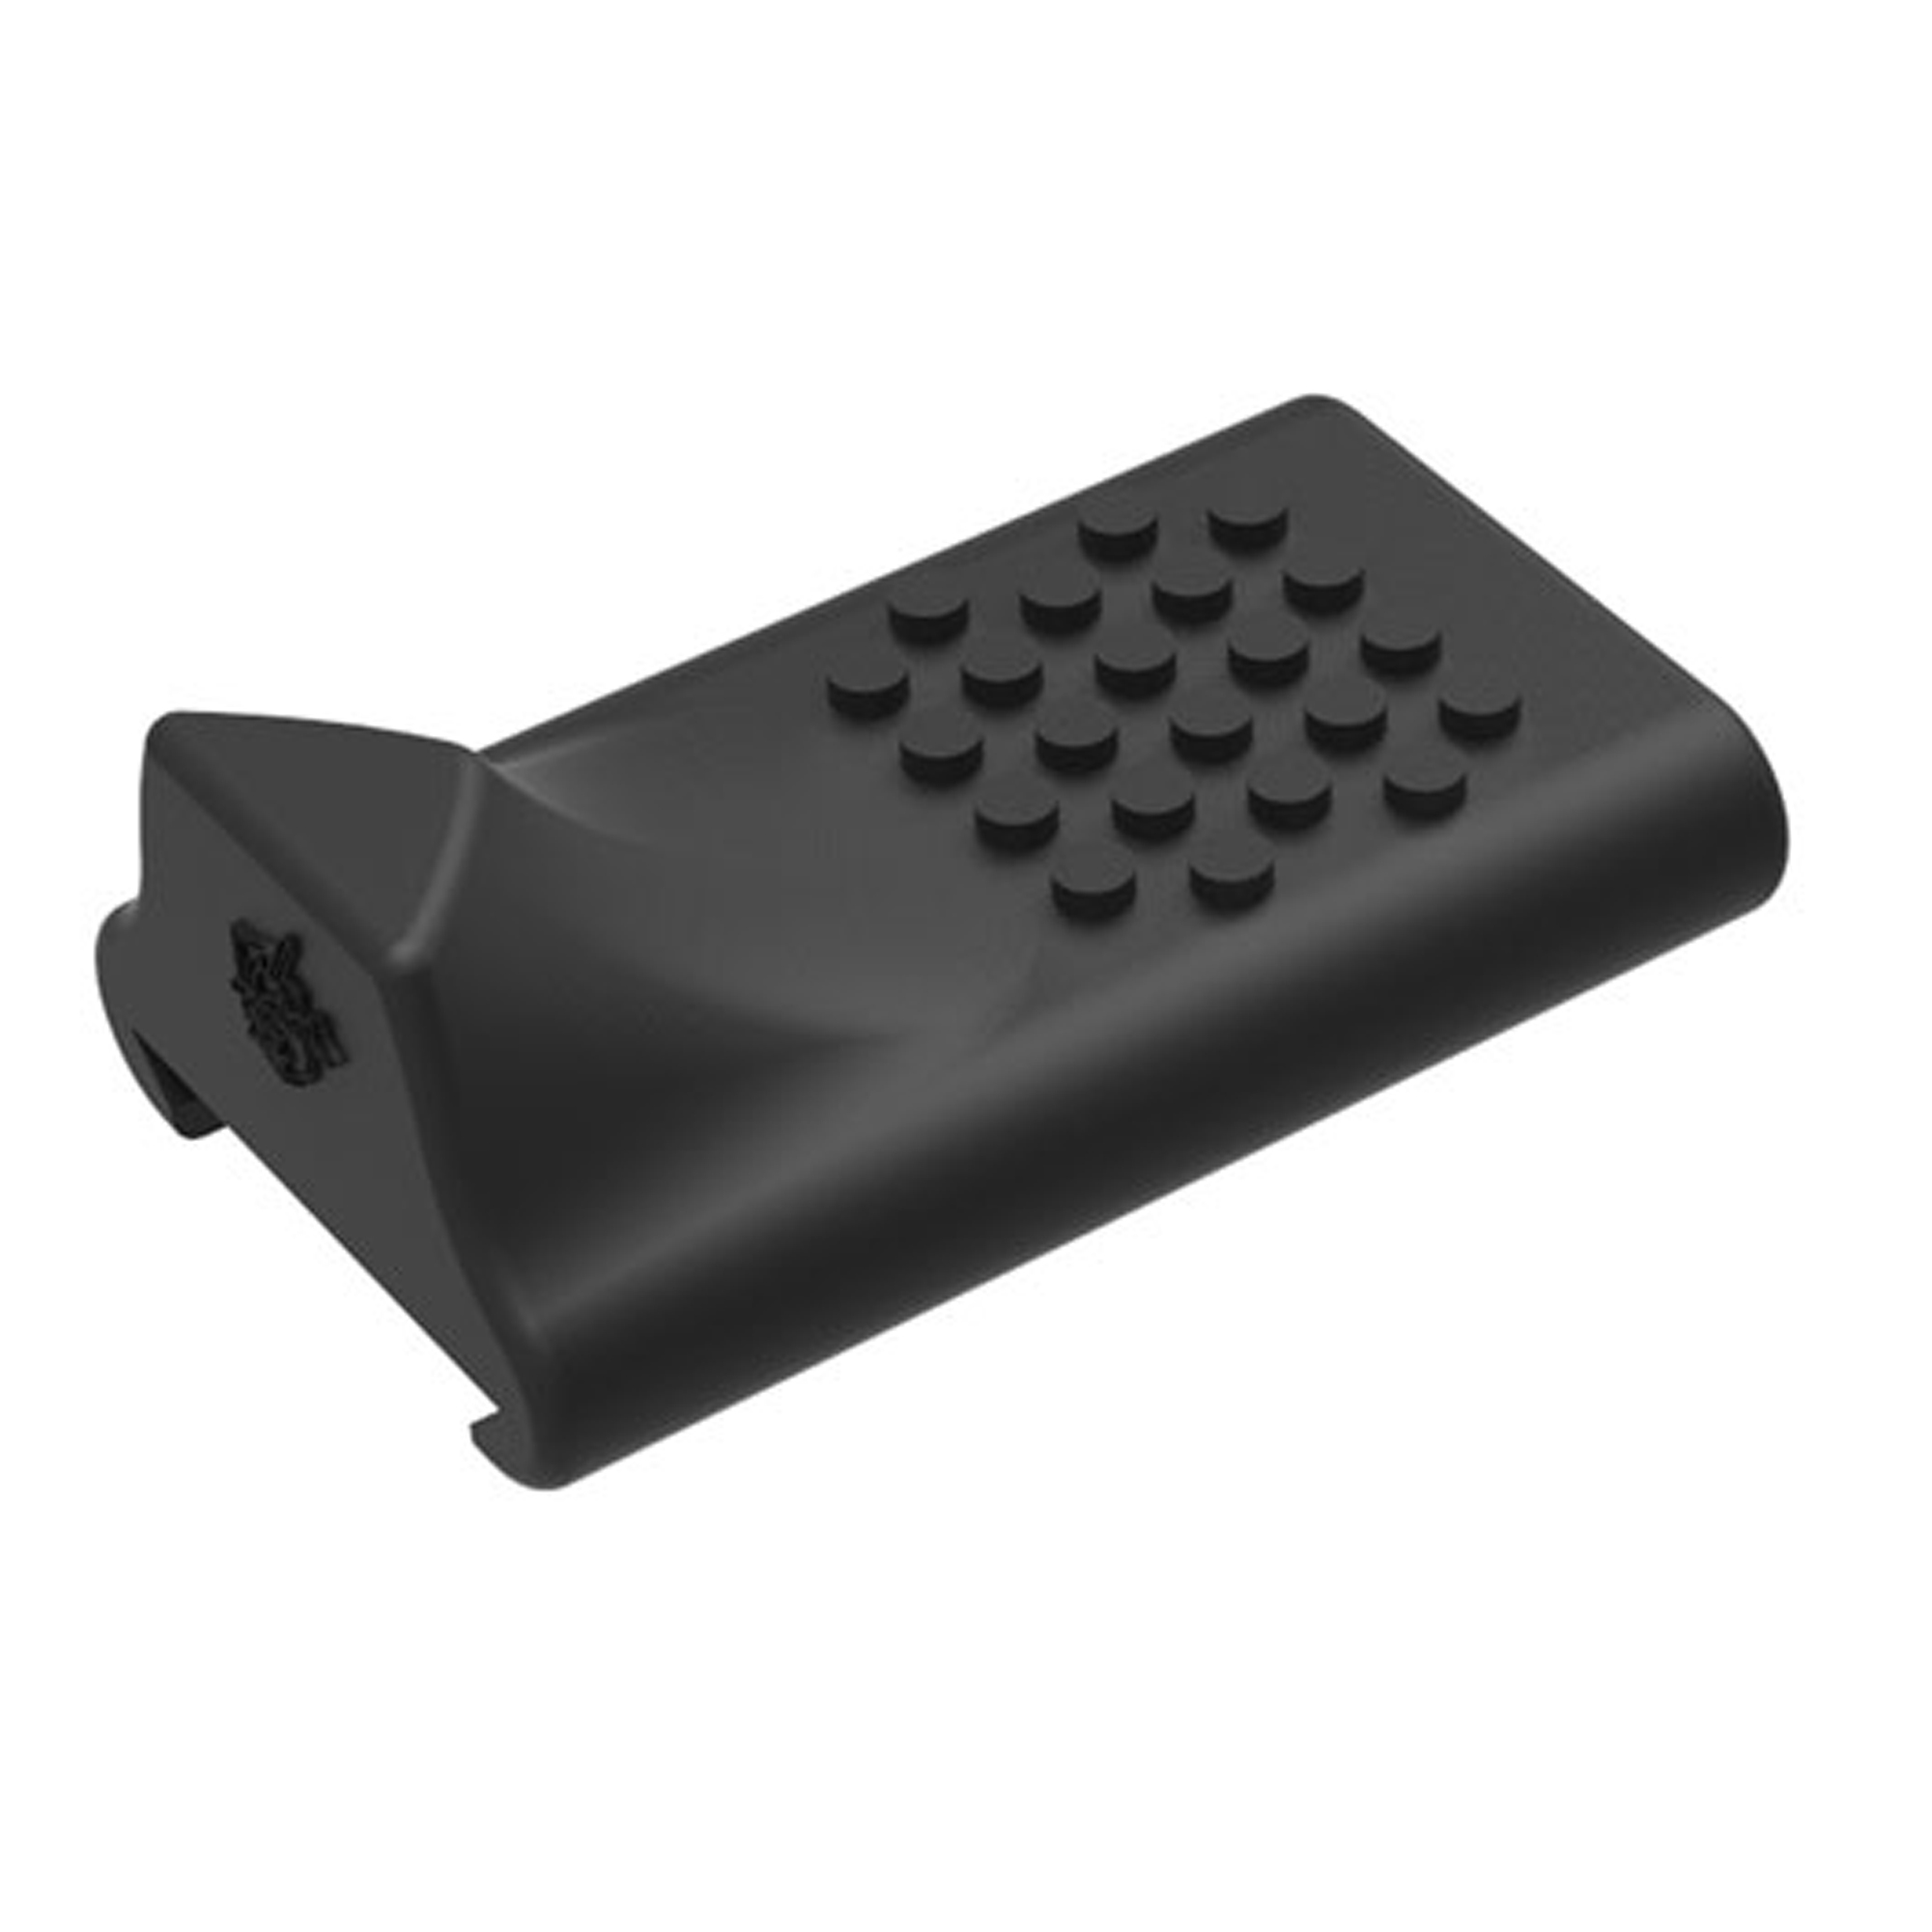 Knights Armament Co.'s Top Rail Rubber Thumb Rest features an elevated stop and textured grip to accommodate an isosceles shooting stance. Designed to be installed on a MIL-STD-1913 top rail.